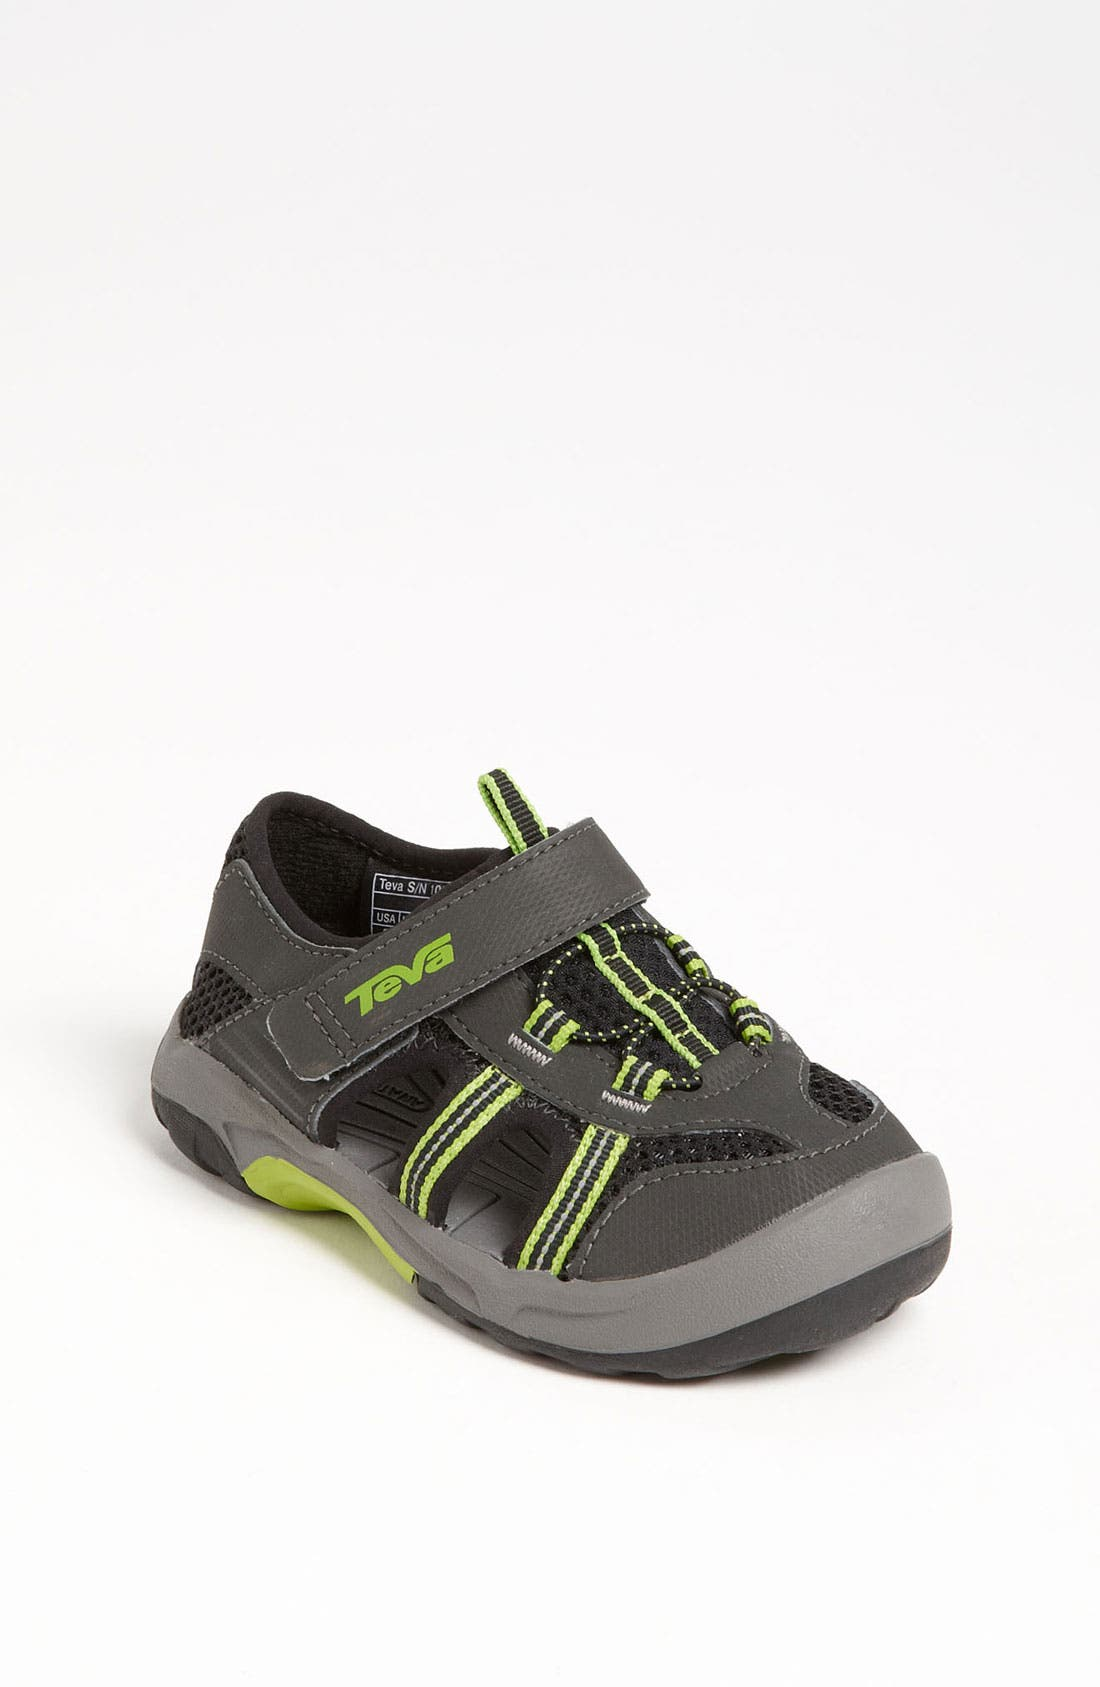 Alternate Image 1 Selected - Teva 'Omnium' Slip-On (Toddler, Little Kid & Big Kid)